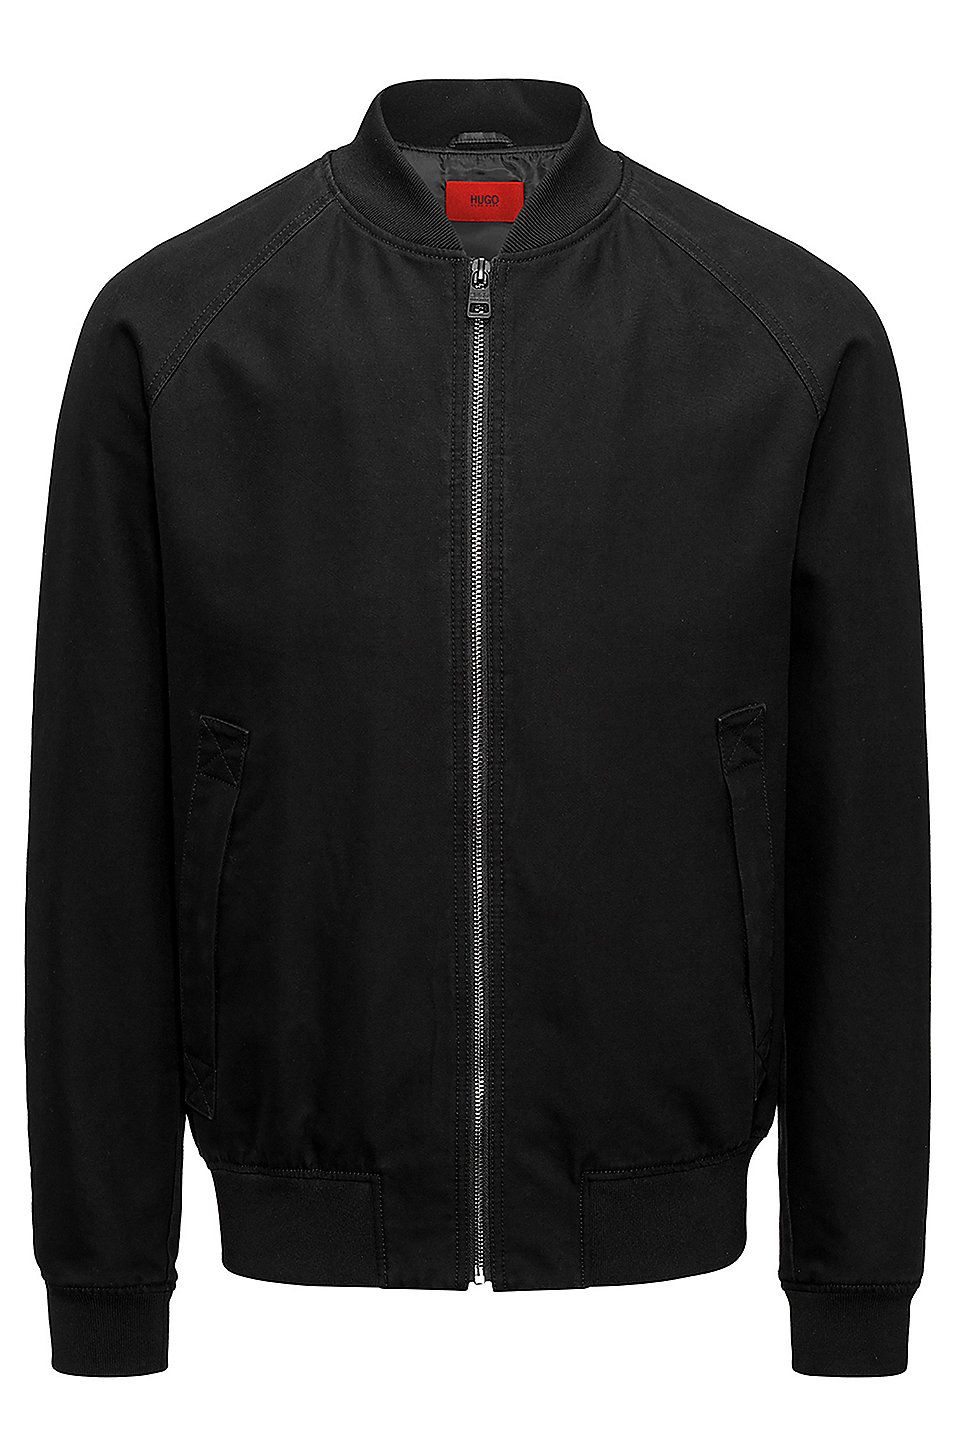 Hugo Boss Washed Cotton Canvas Bomber Jacket With Bold Patched Artwork Black Bomber Jackets From Hugo For Men In The Official Hugo Boss Online Store Free Ship [ 1456 x 960 Pixel ]